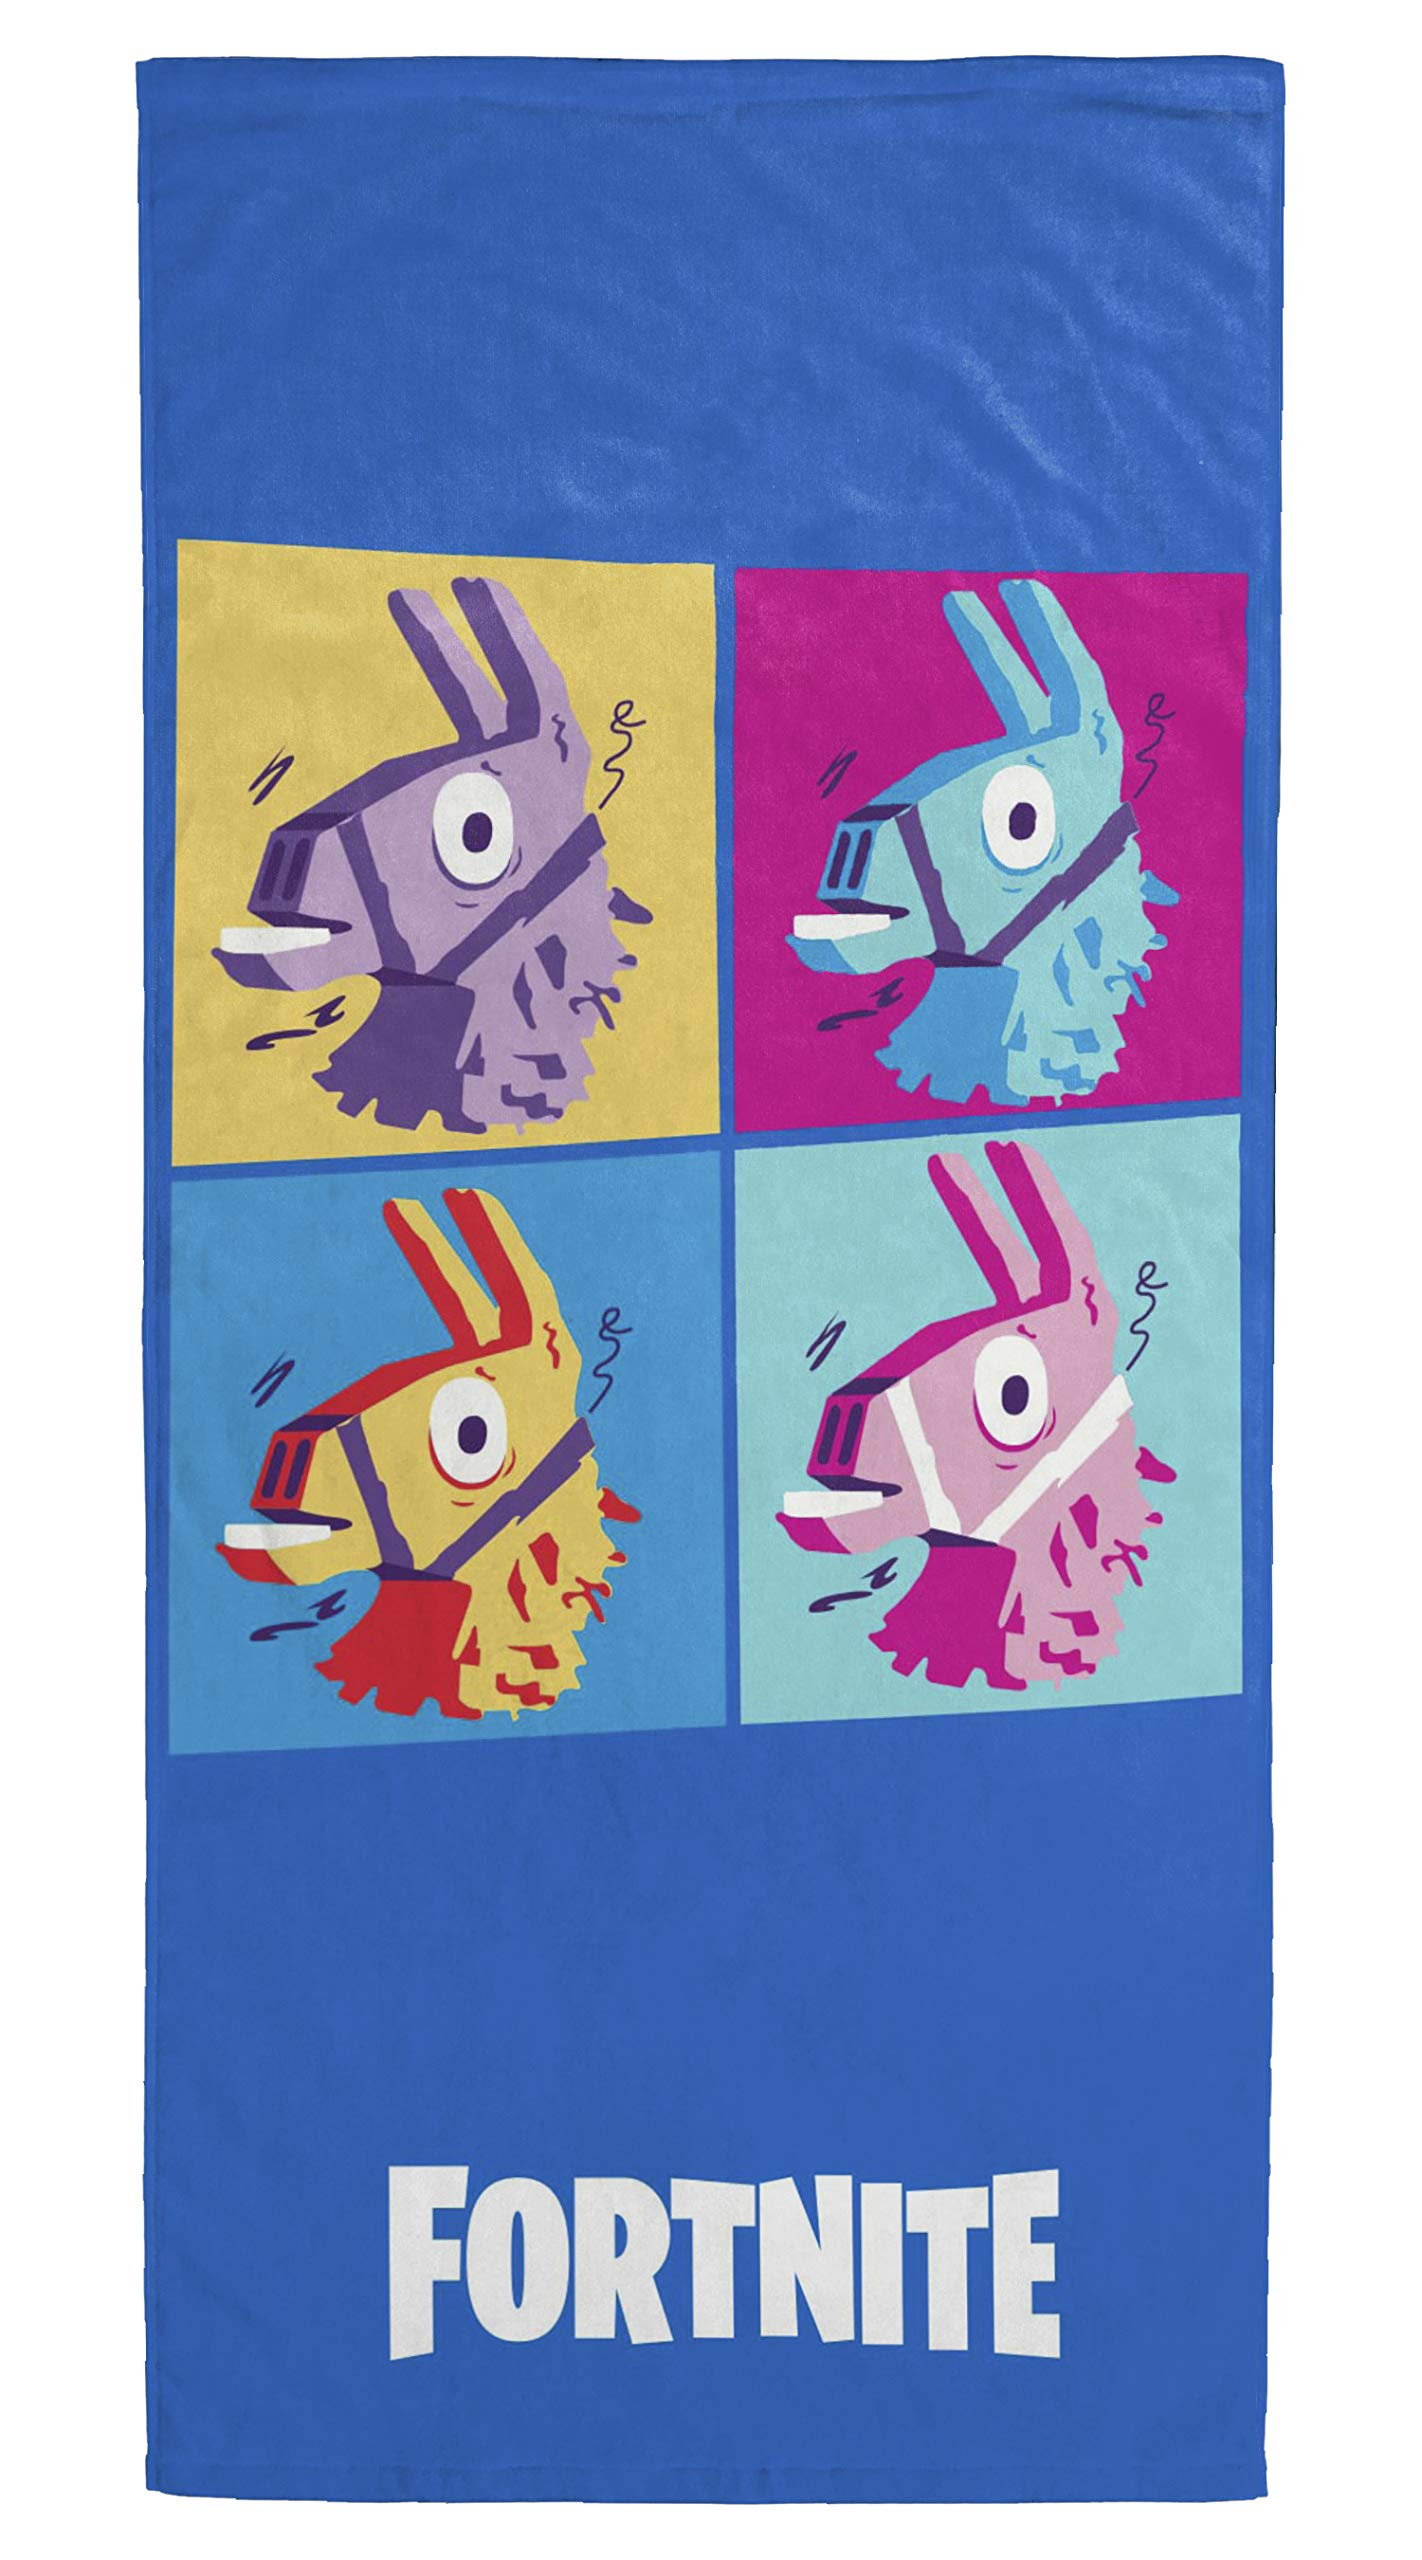 Fortnite Llama Warhol Kids Bath/Pool/Beach Towel - Super Soft & Absorbent Fade Resistant Cotton Towel, Measures 28 inch x 58 inch (Official Fornite Product)